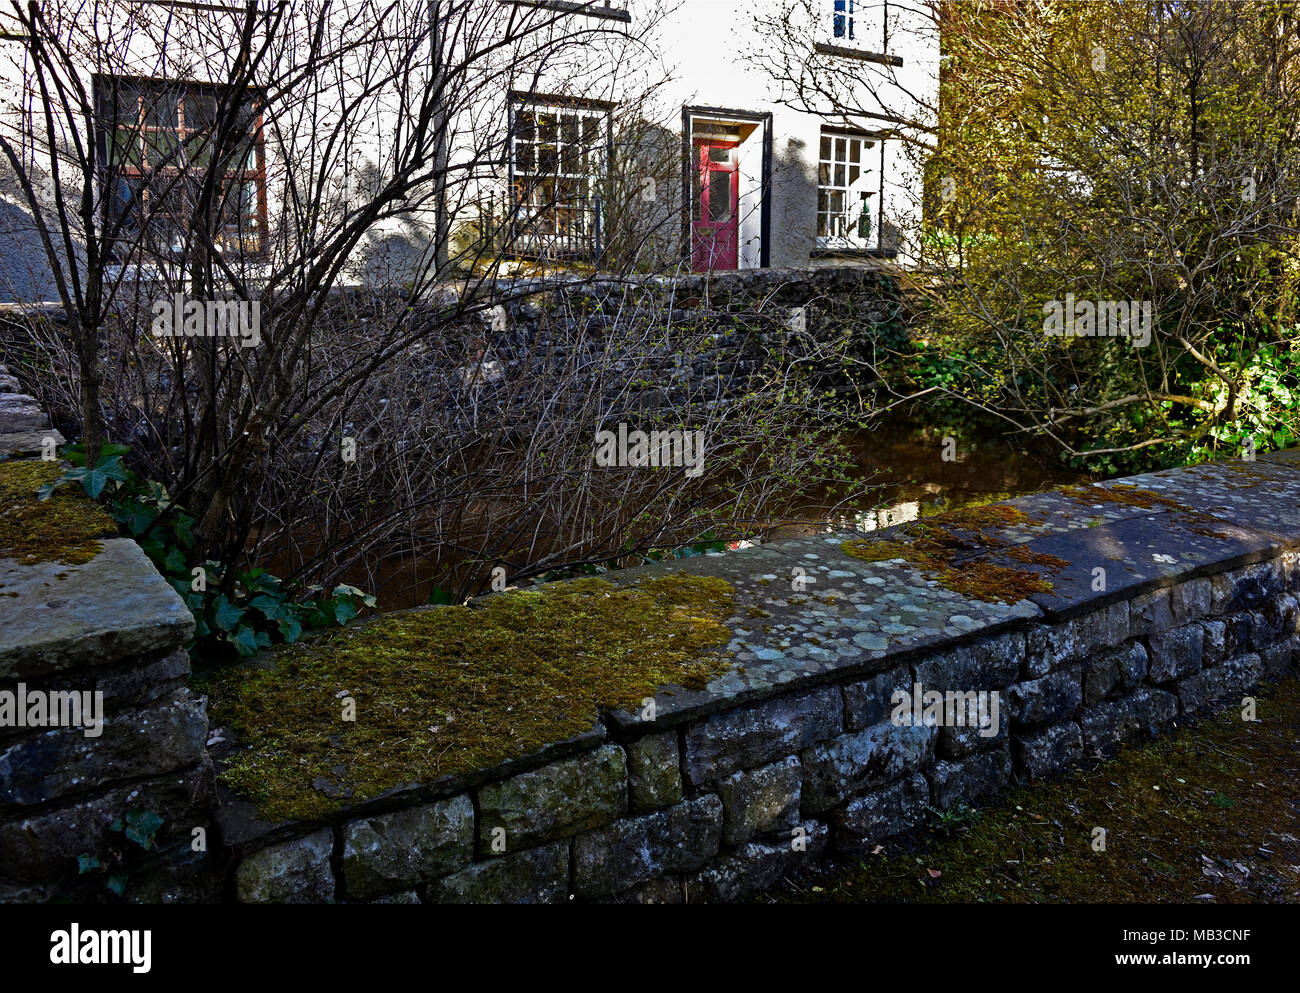 The Anchorite Well. Anchorite Fields, Kendal, Cumbria, England, United Kingdom, Europe. - Stock Image